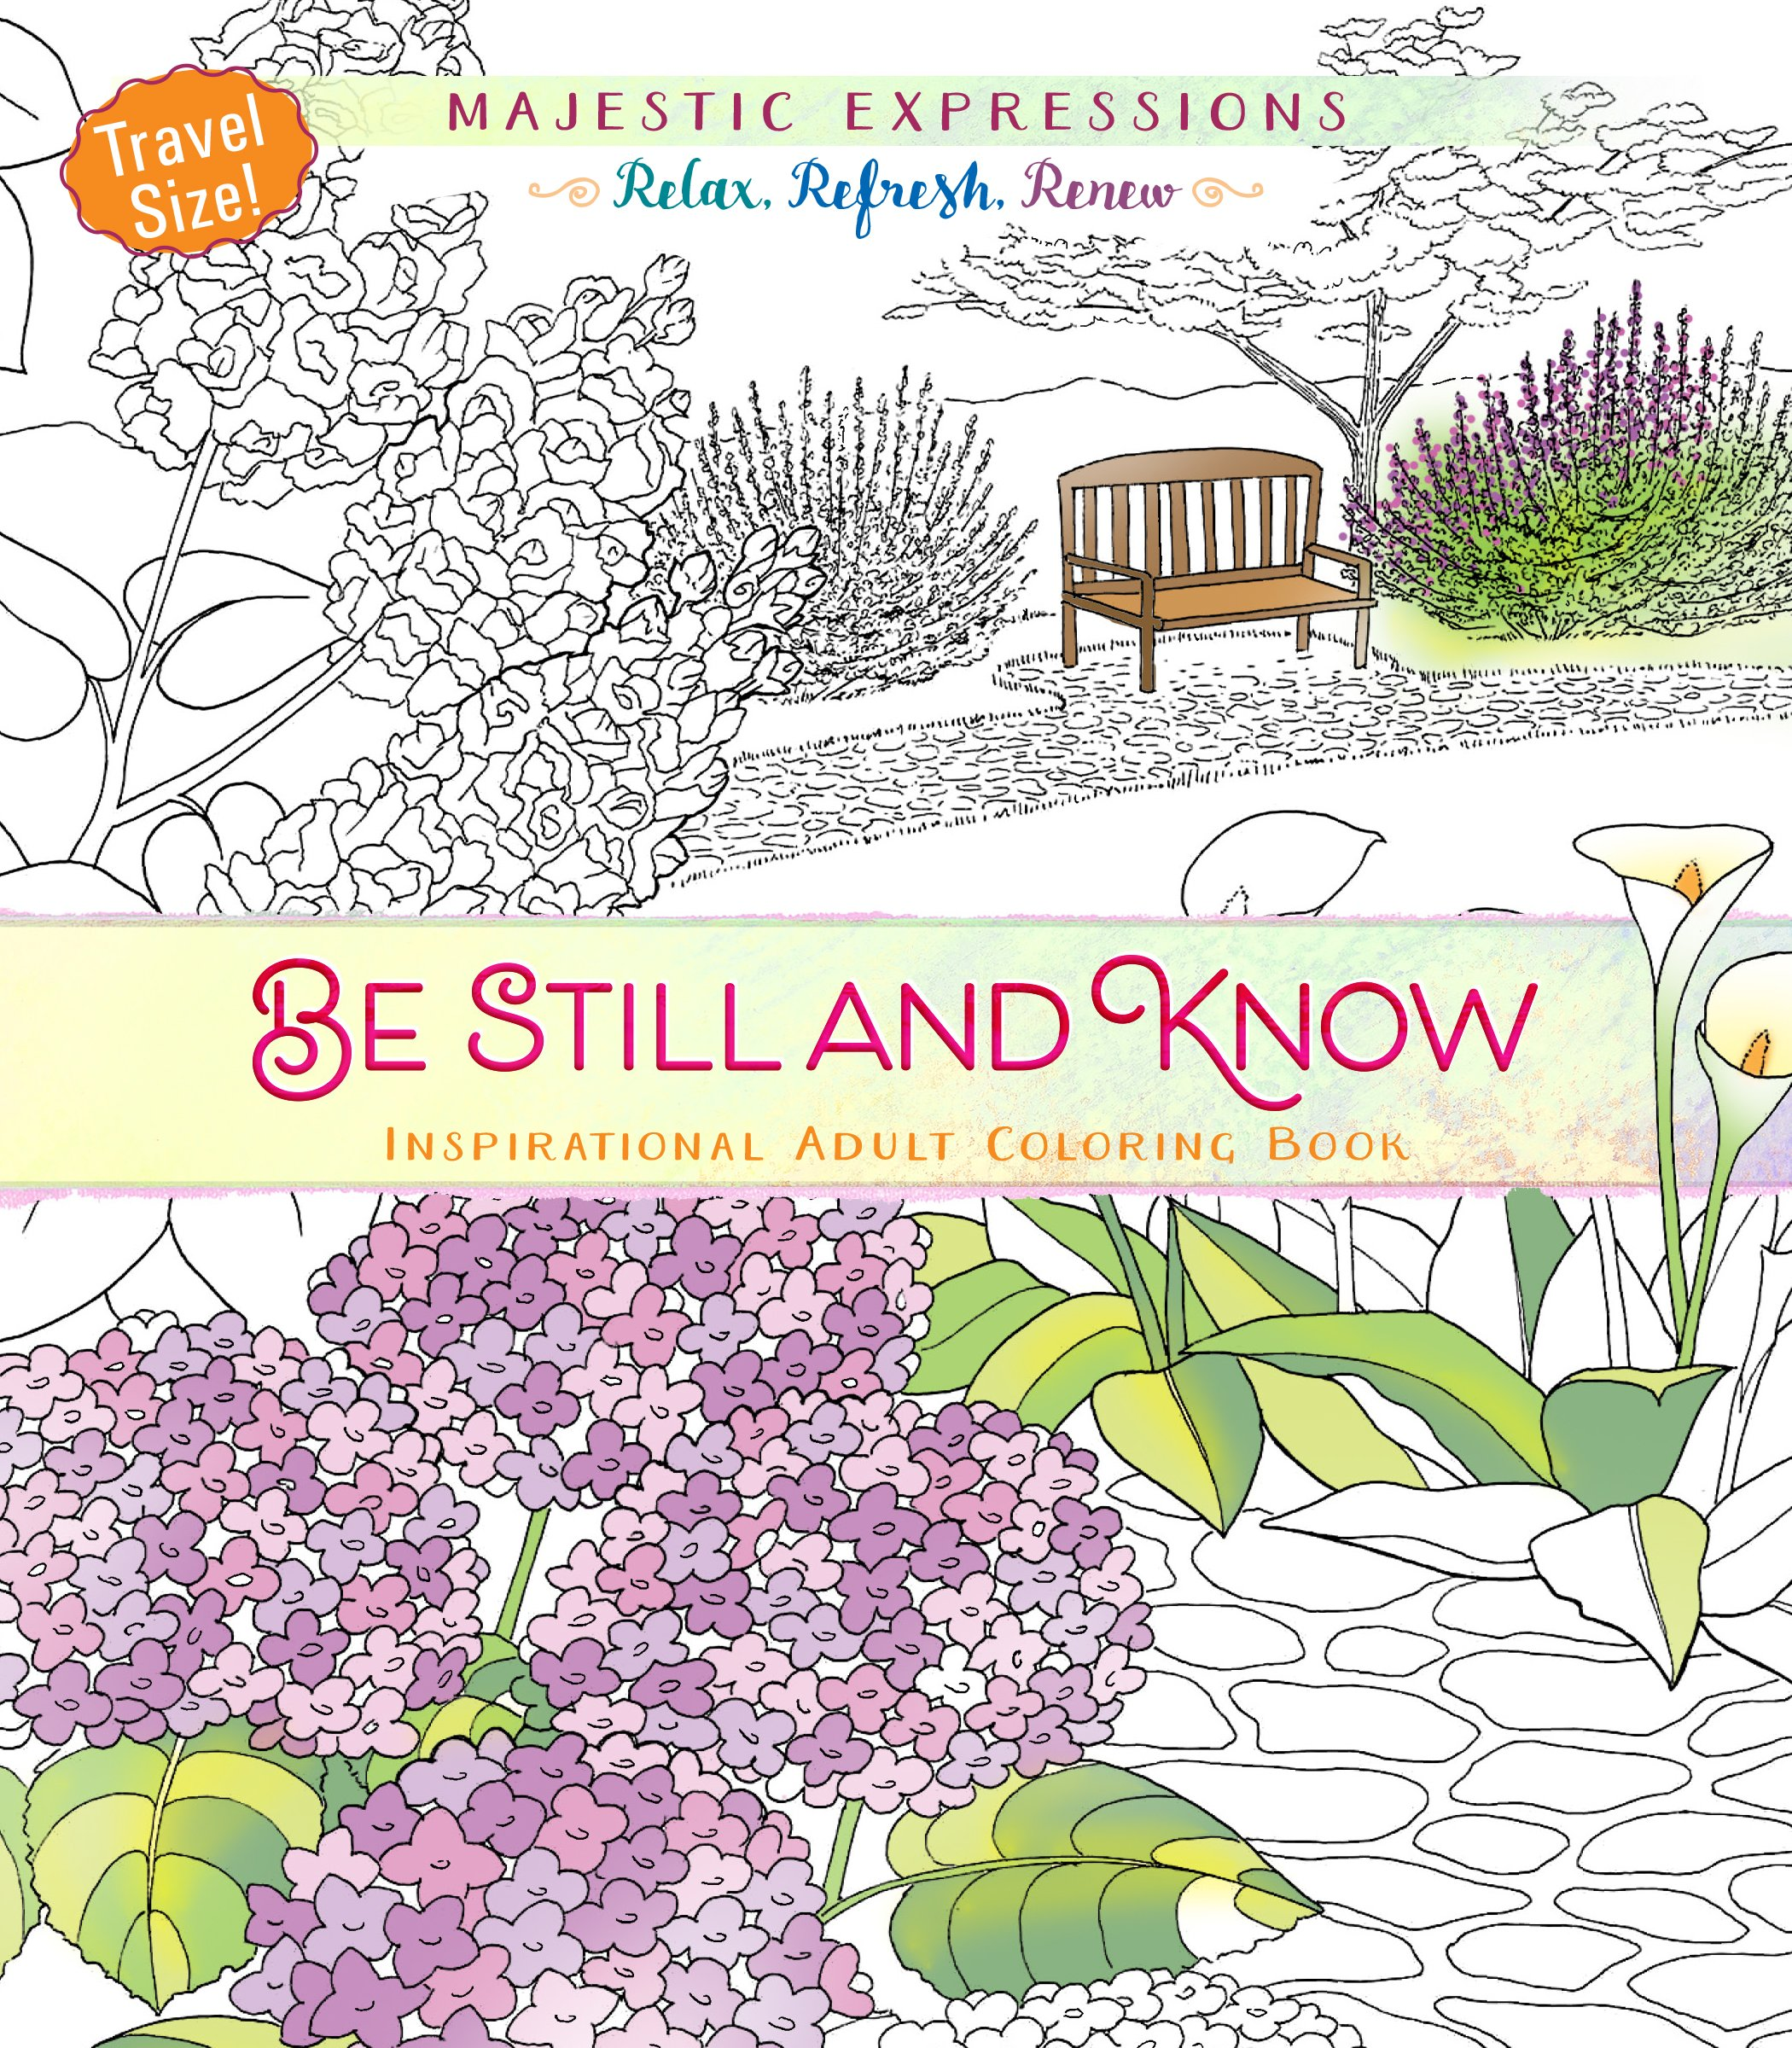 Download Be Still and Know: Inspirational Adult Coloring Book (Travel Size!) (Majestic Expressions) ebook